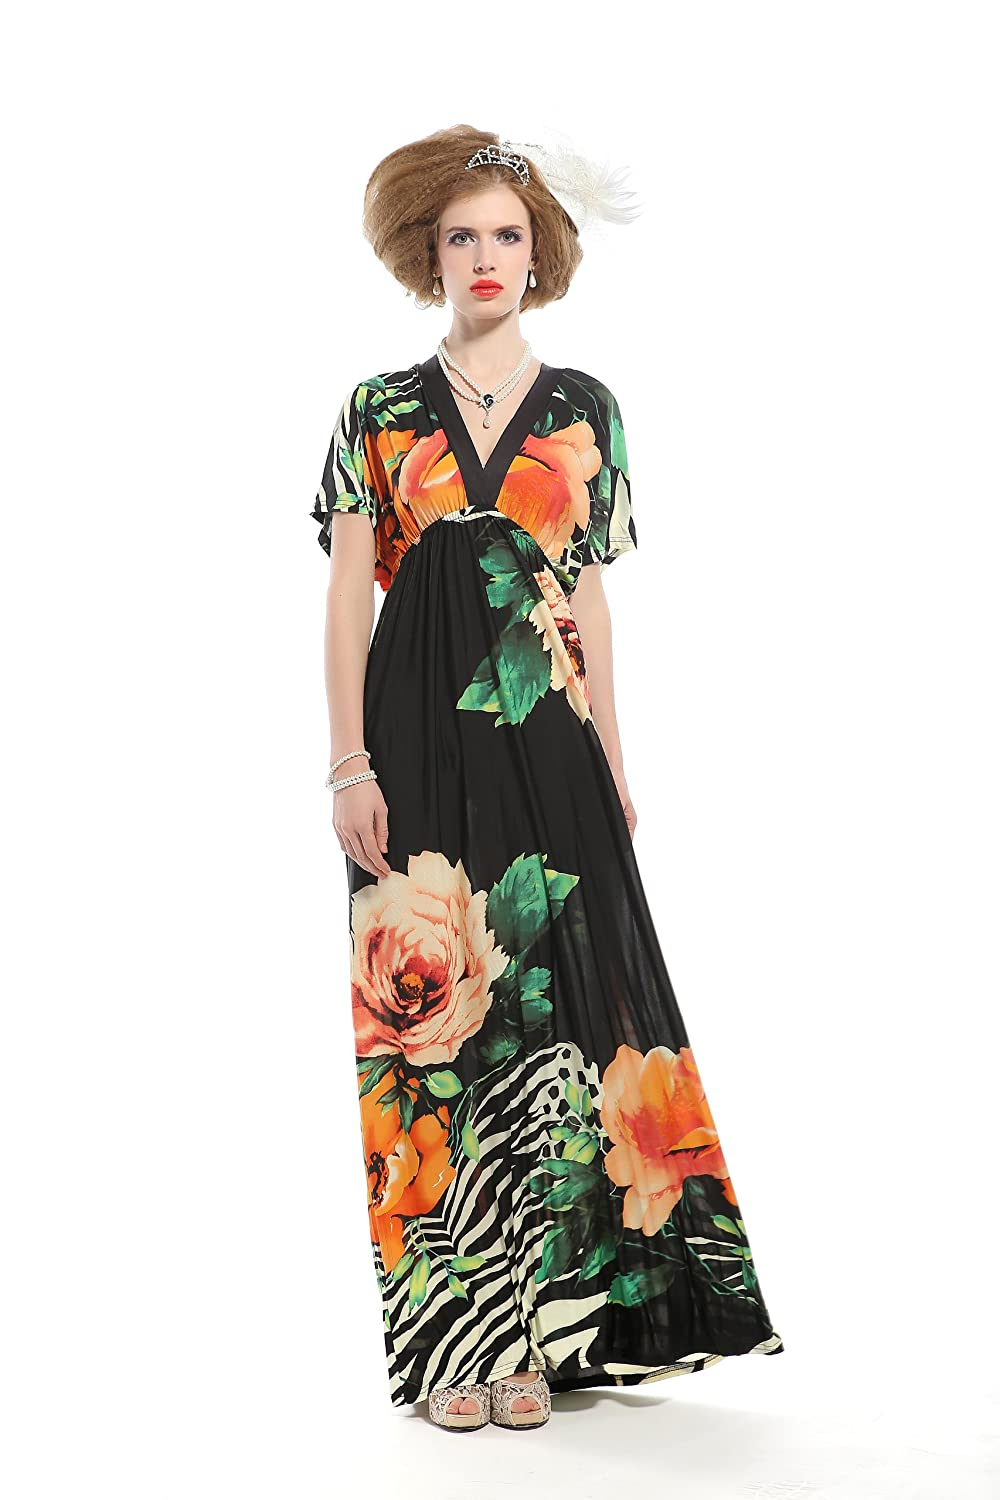 Pattern dress with a sleeve bat again in demand by women of fashion